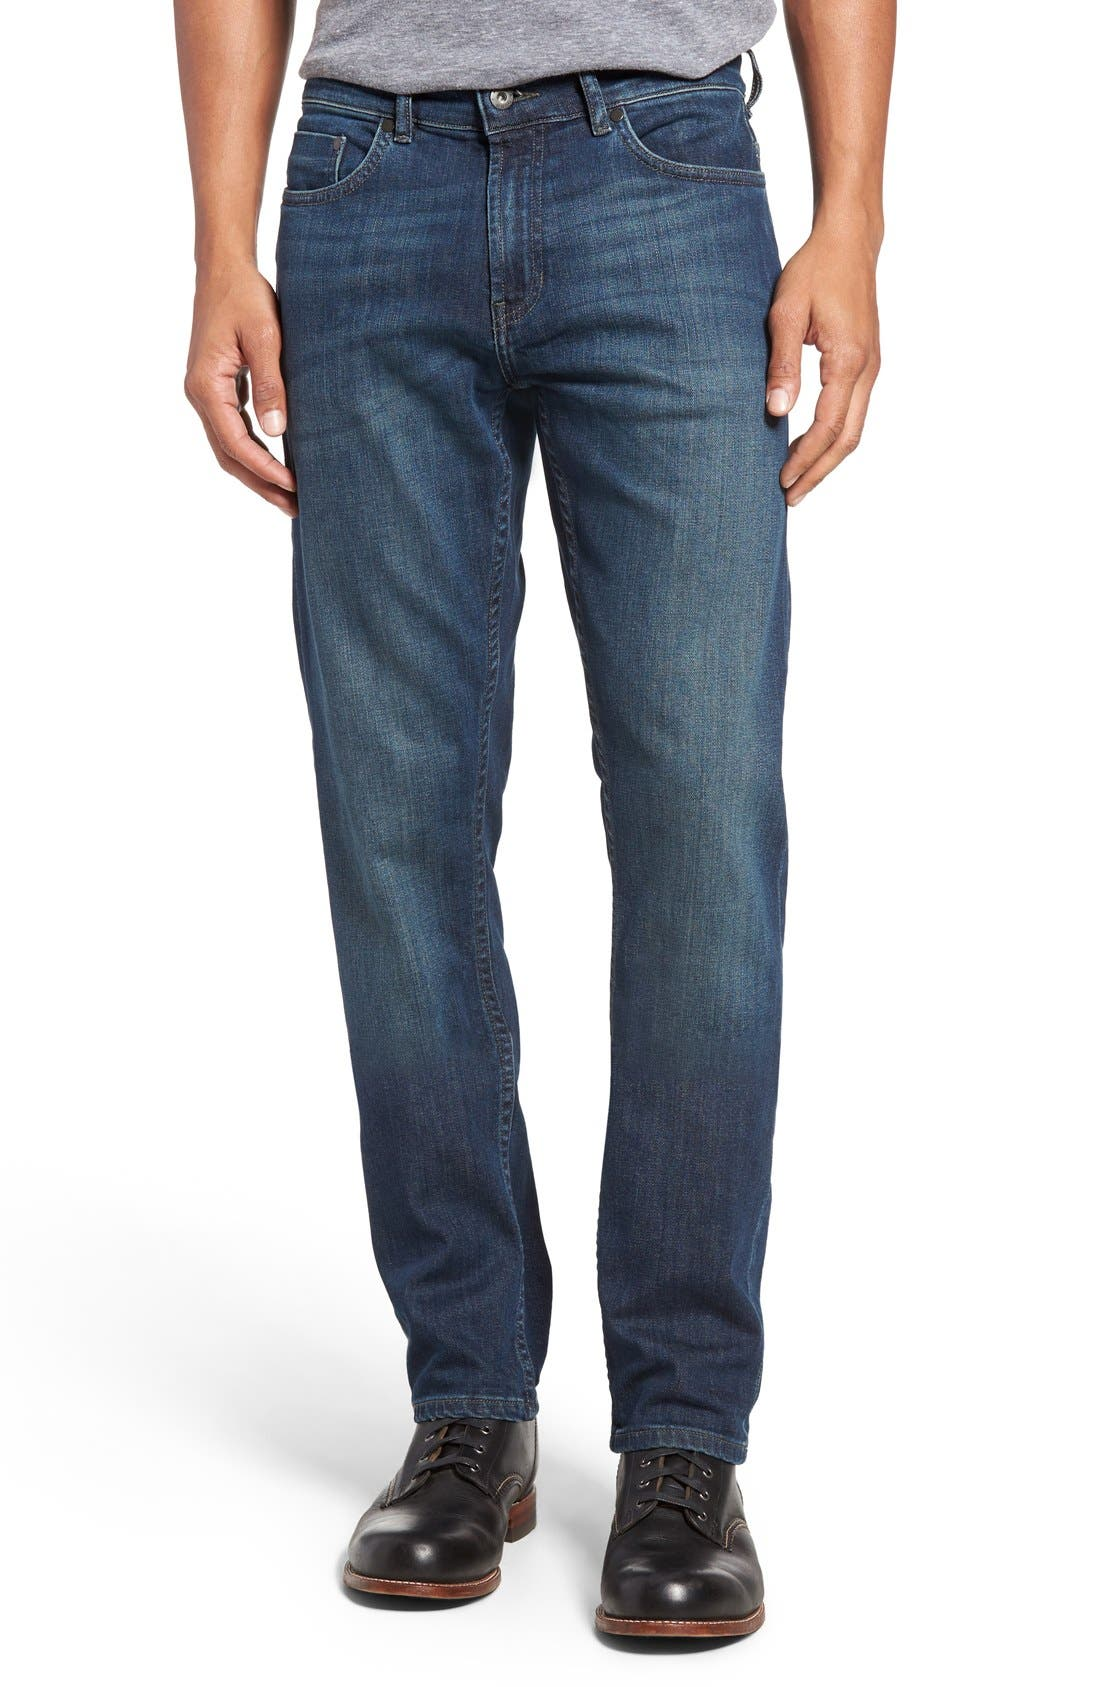 Calvert Slim Fit Jeans,                         Main,                         color, 400